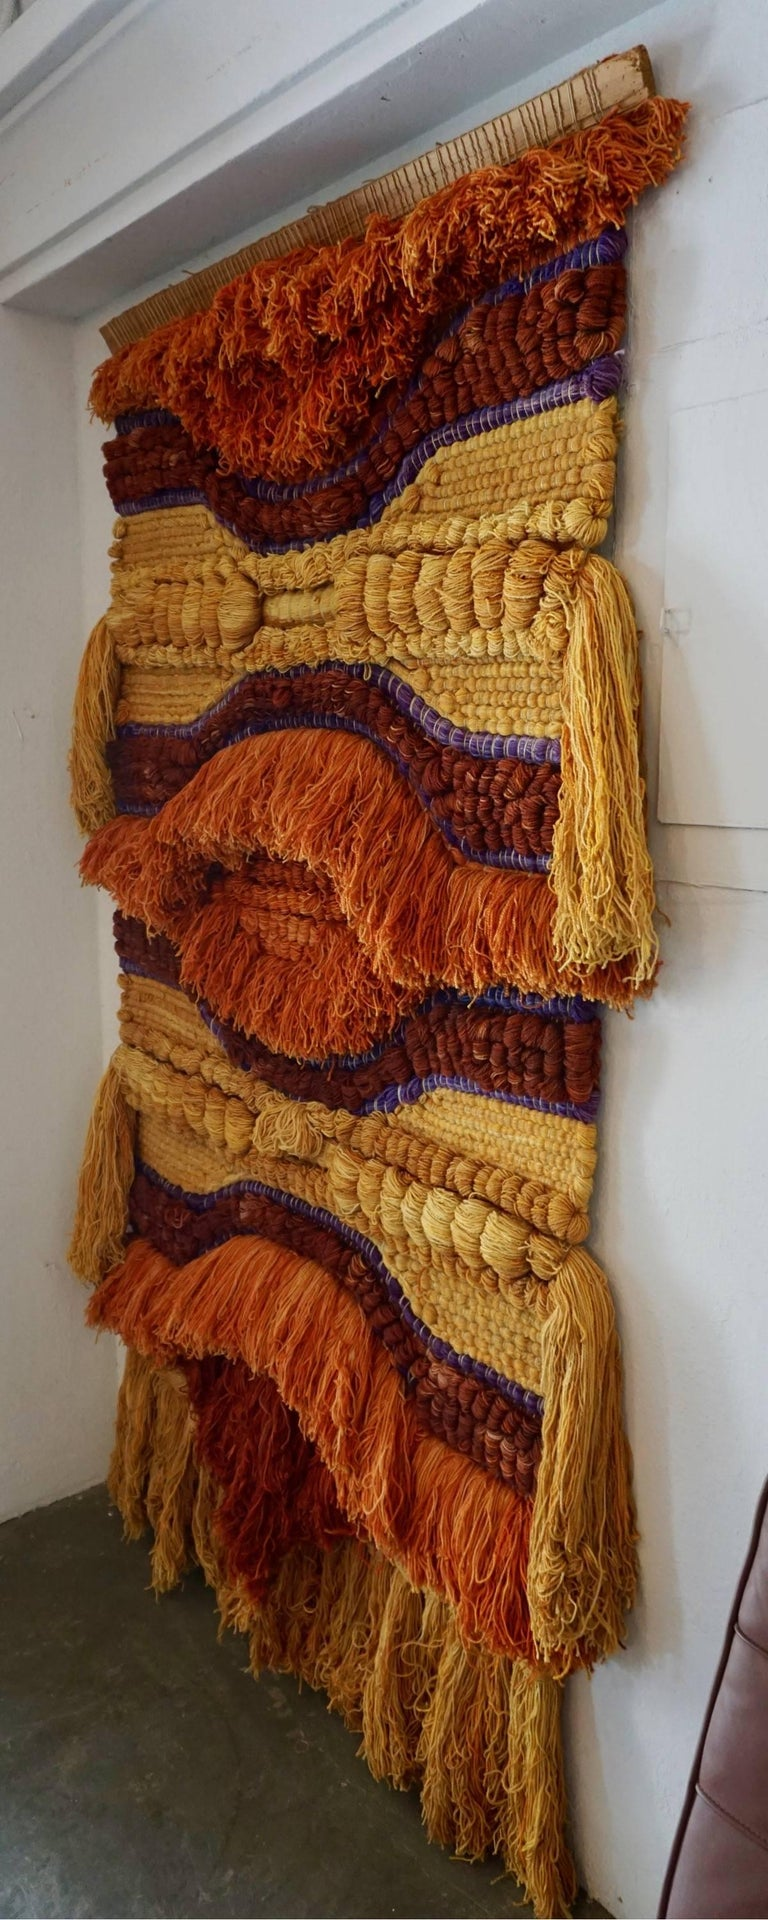 Woven, dyed and tufted yarns in bold colors of orange, burnt sienna and purple violet. Excellent example of 1960s fiber art.